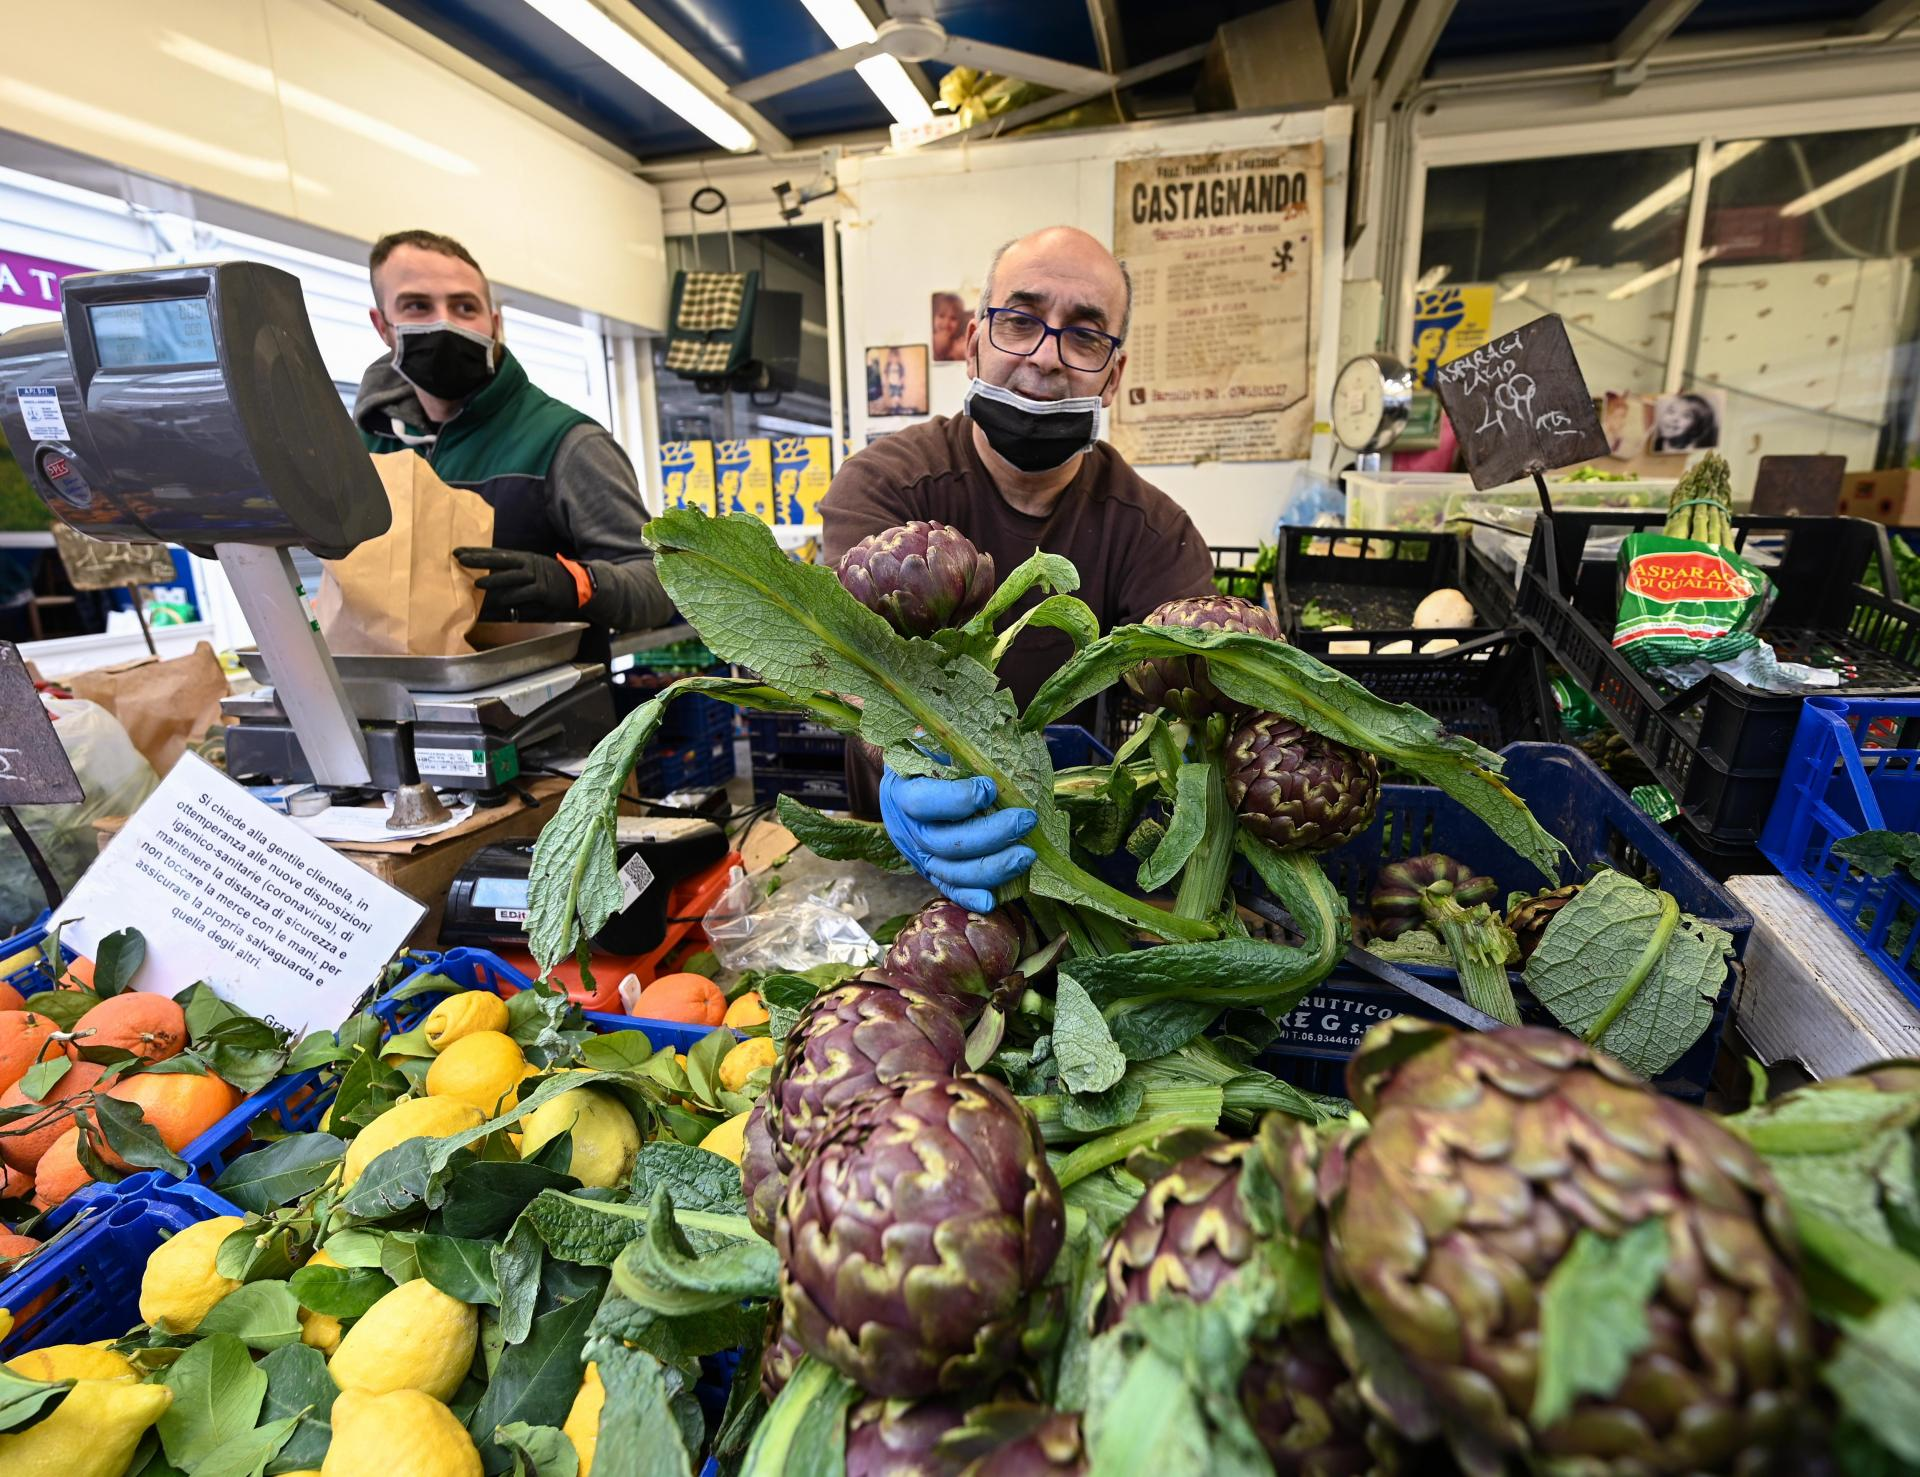 A fruit and vegetable seller picks artichokes at the Testaccio market Rome. Photo: AFP